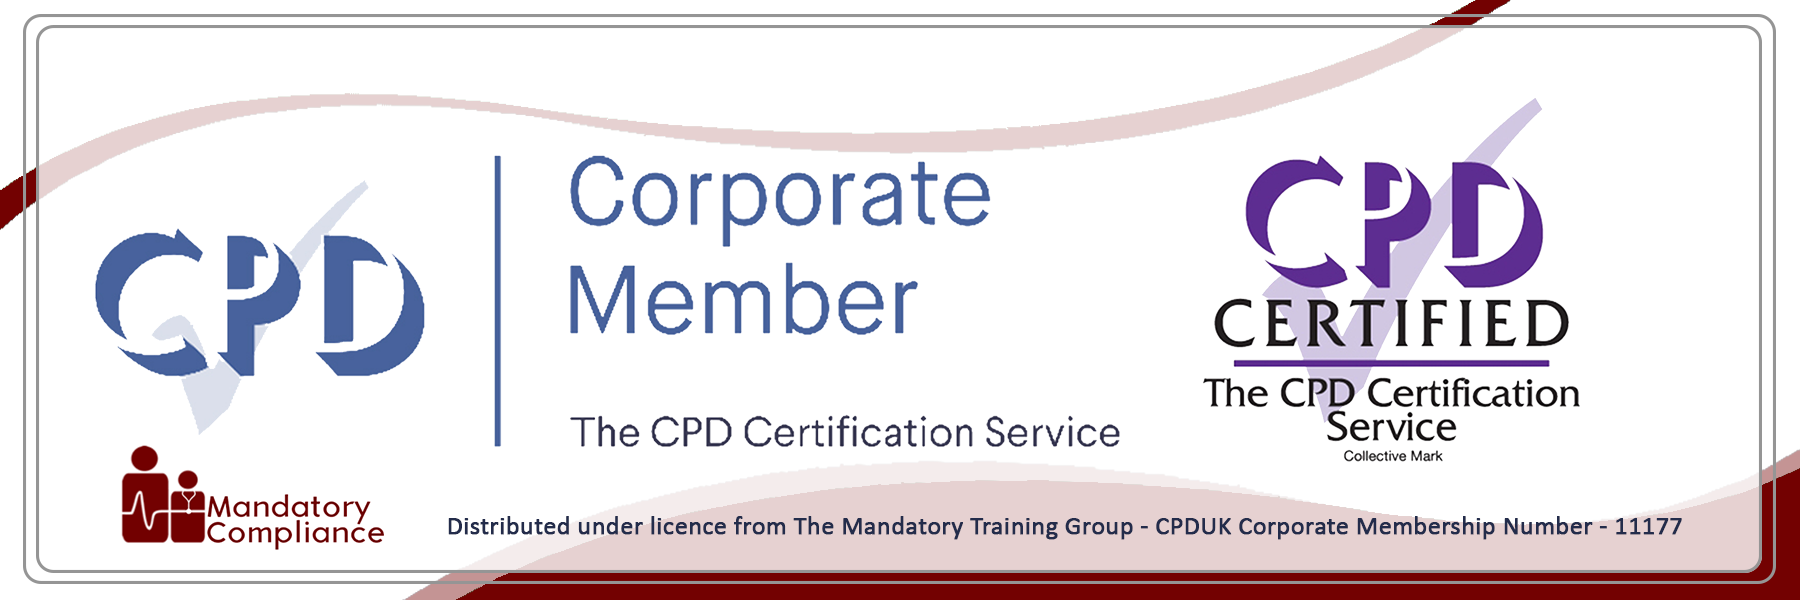 Care Certificate Assessor - Online-Training-Course-CPD-Accredited-Mandatory-Compliance-UK-